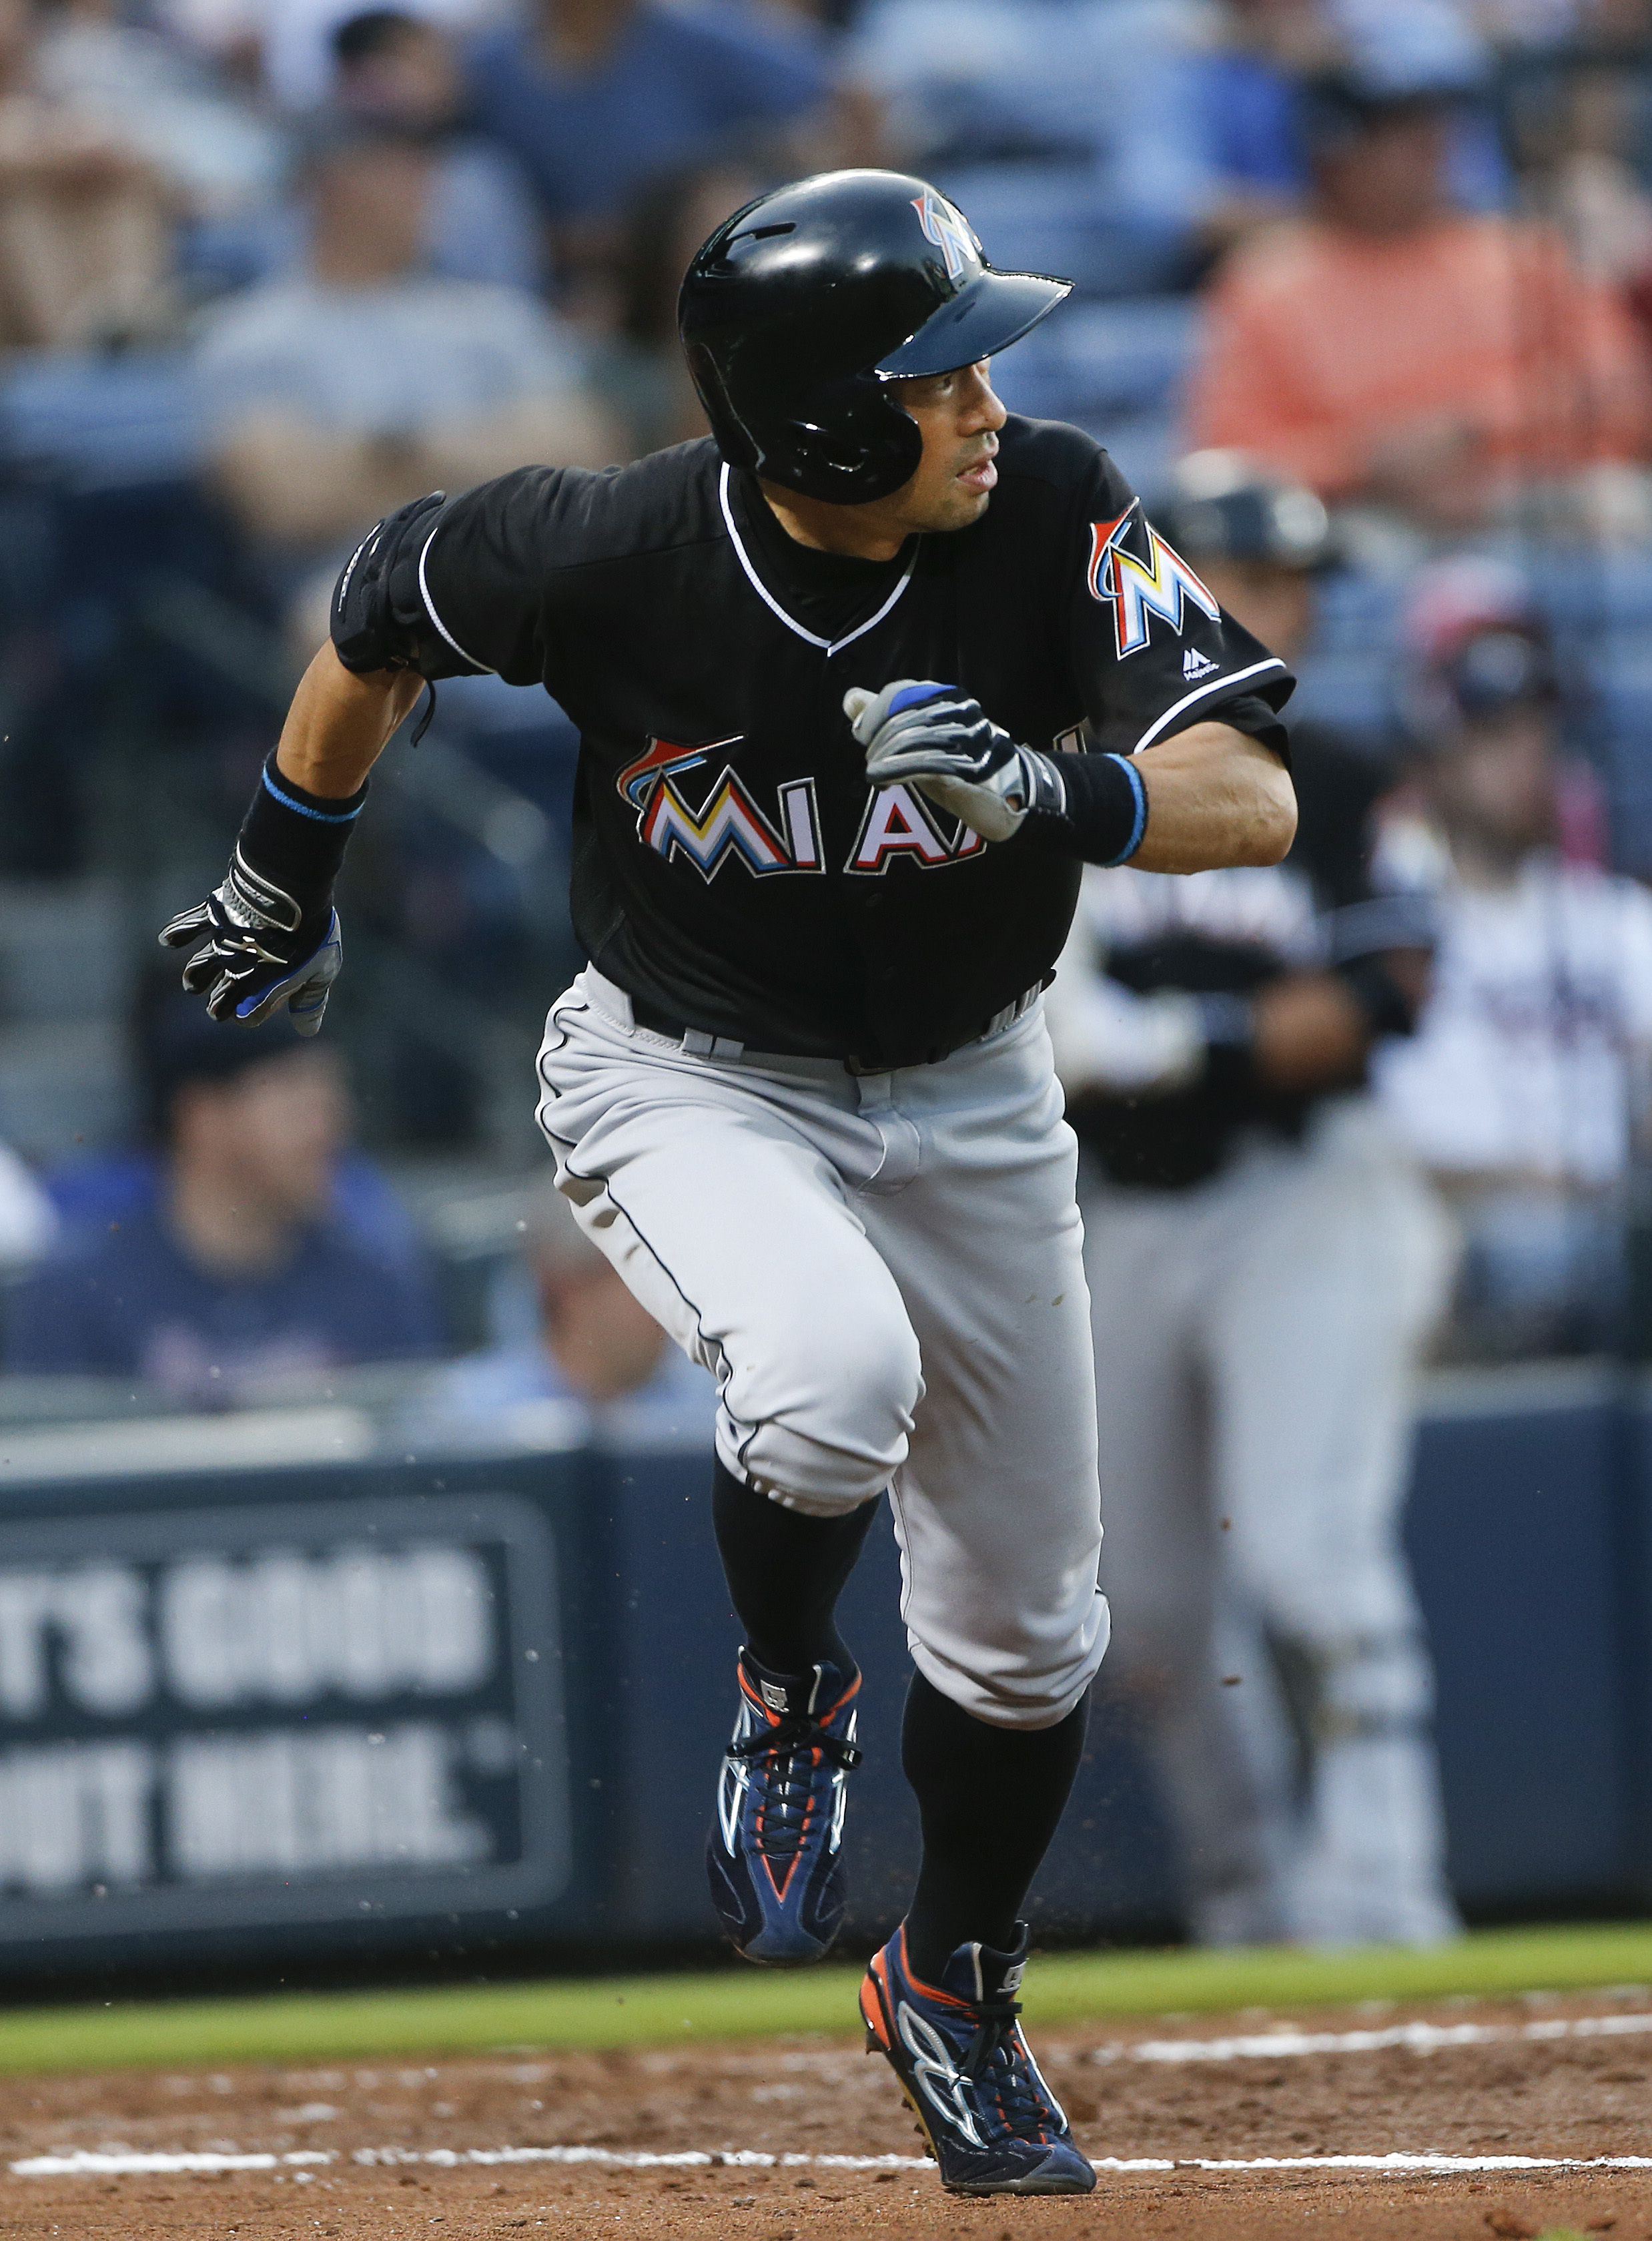 Miami Marlins' Ichiro Suzuki (51) runs to first after hitting a double in the third inning of a baseball game against the Atlanta Braves, Friday, May 27, 2016, in Atlanta. Suzuki scored later in the inning. (AP Photo/John Bazemore)